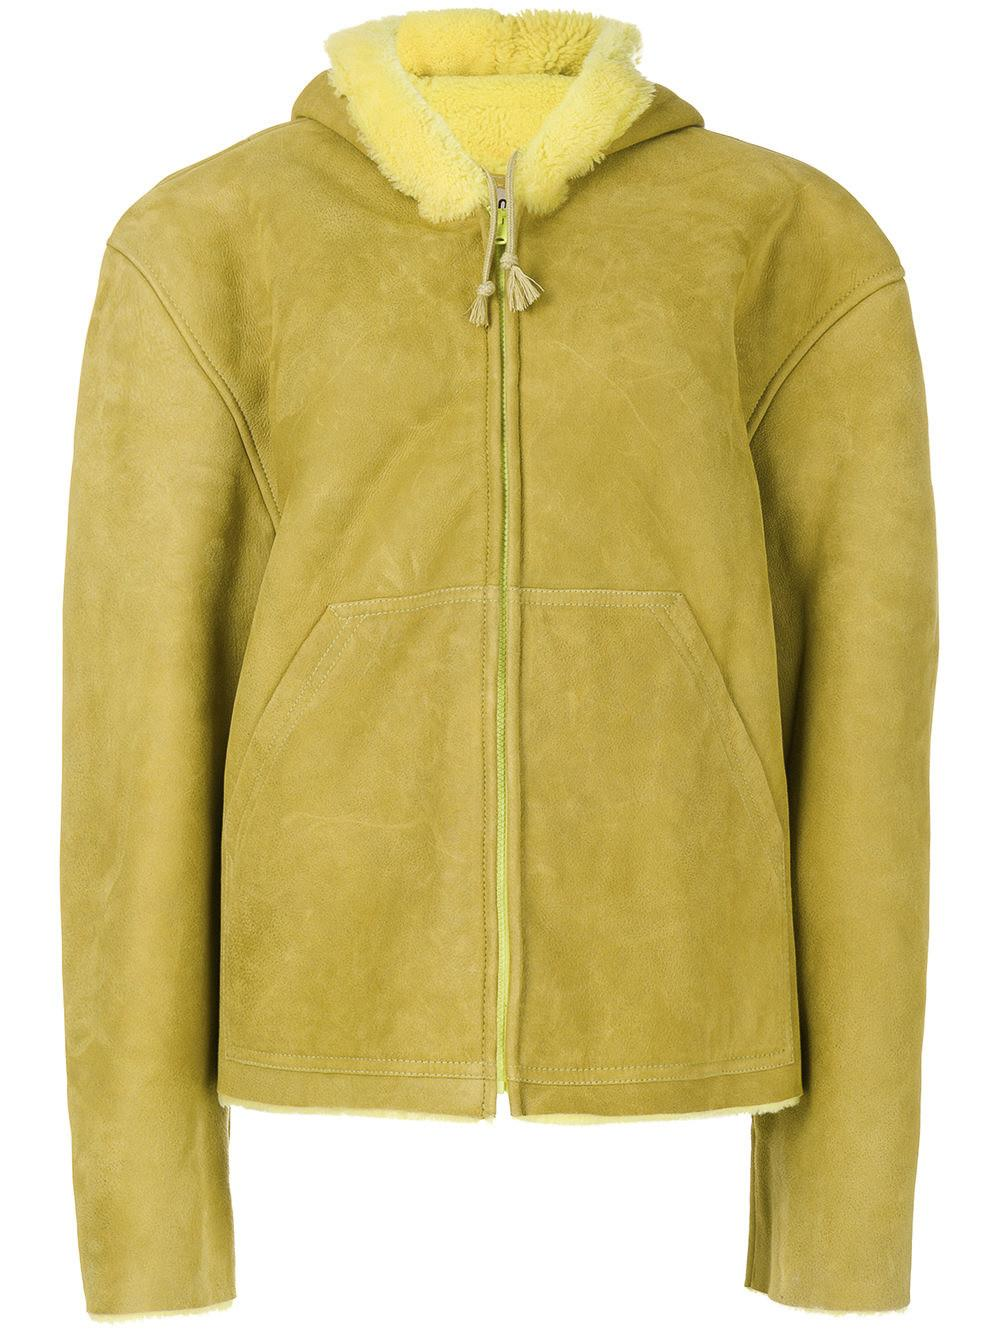 Yeezy Season 4 Shearling-Lined Suede Jacket In Highlight